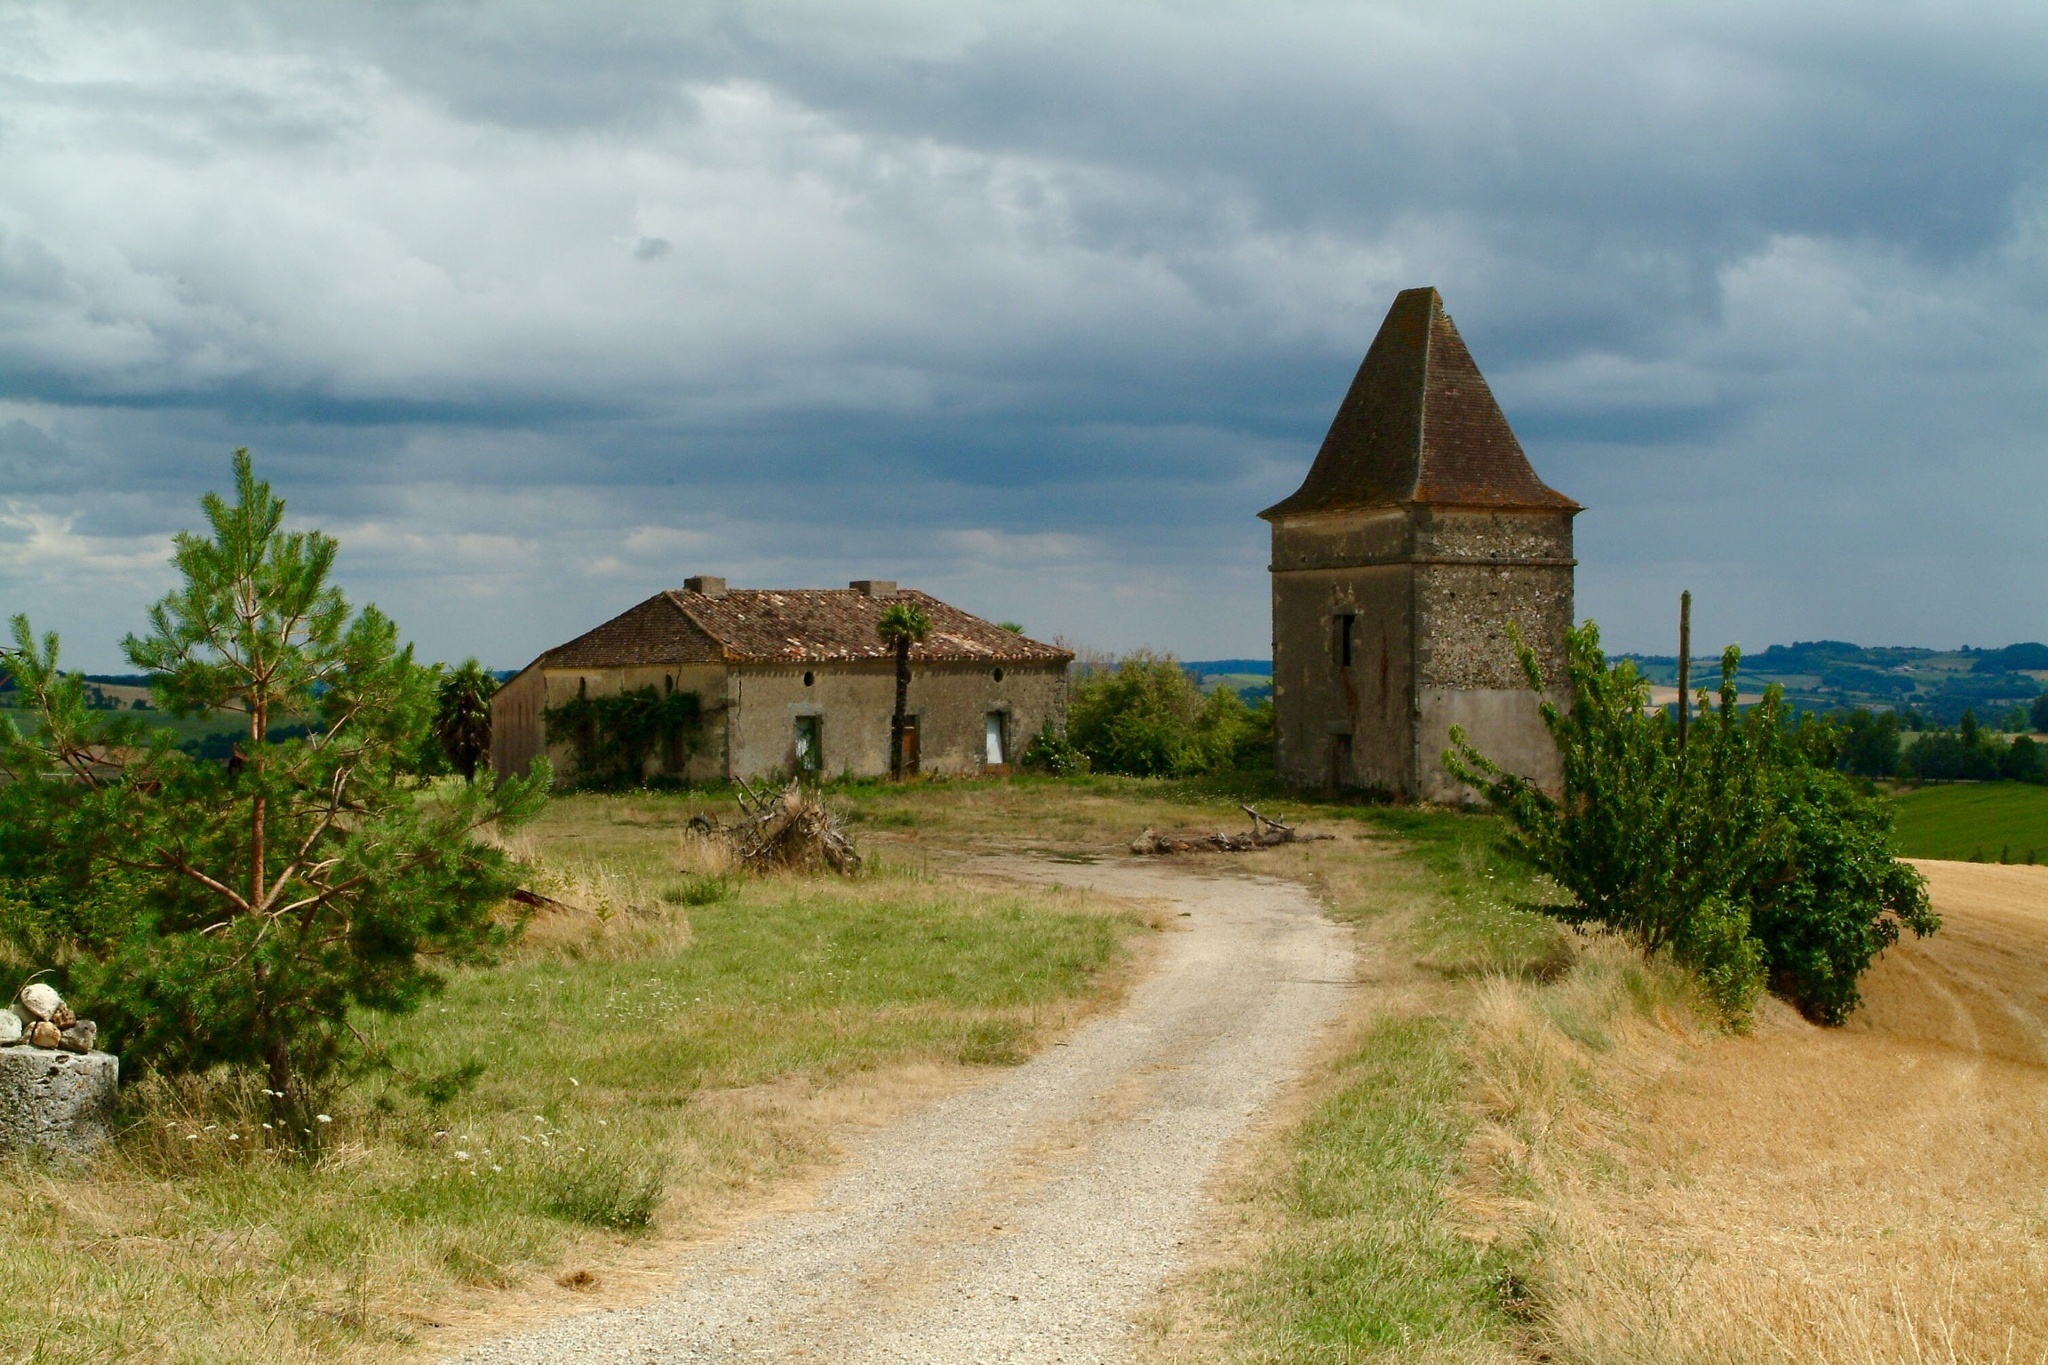 Storm coming in the Dordogne by Richie Gray